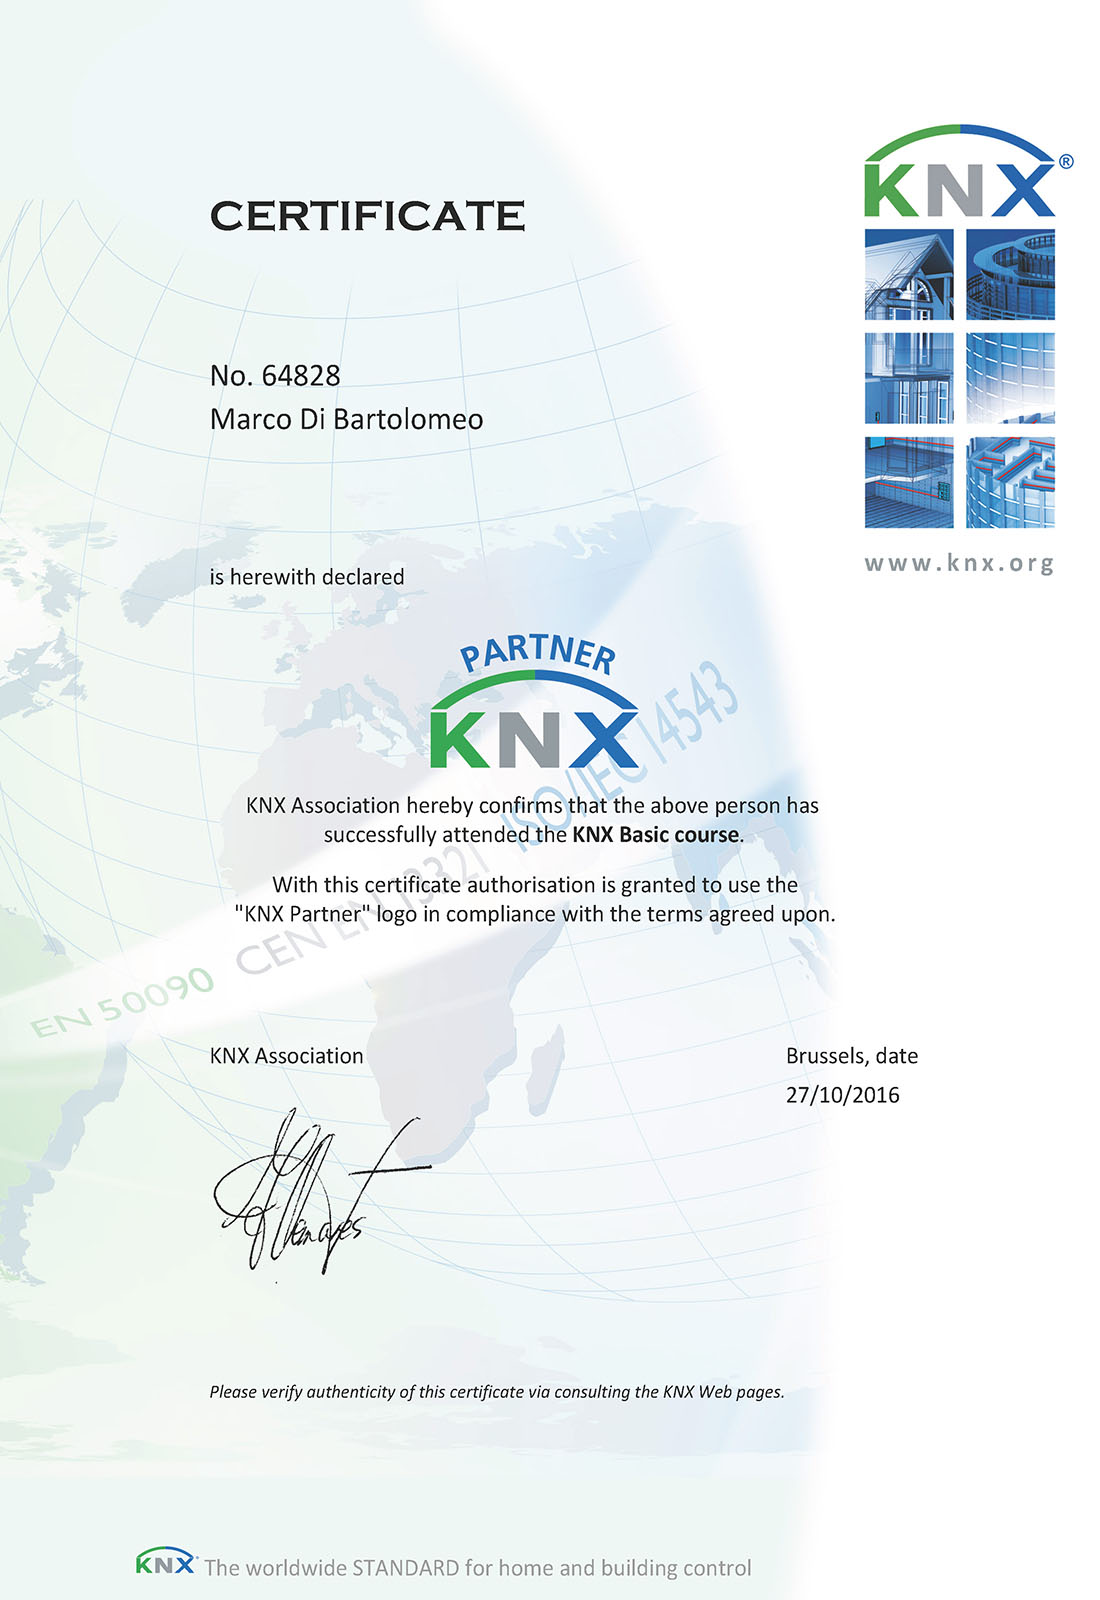 Partner konnex knx domotica - Home and Building Automation - Ing. Marco Di Bartolomeo